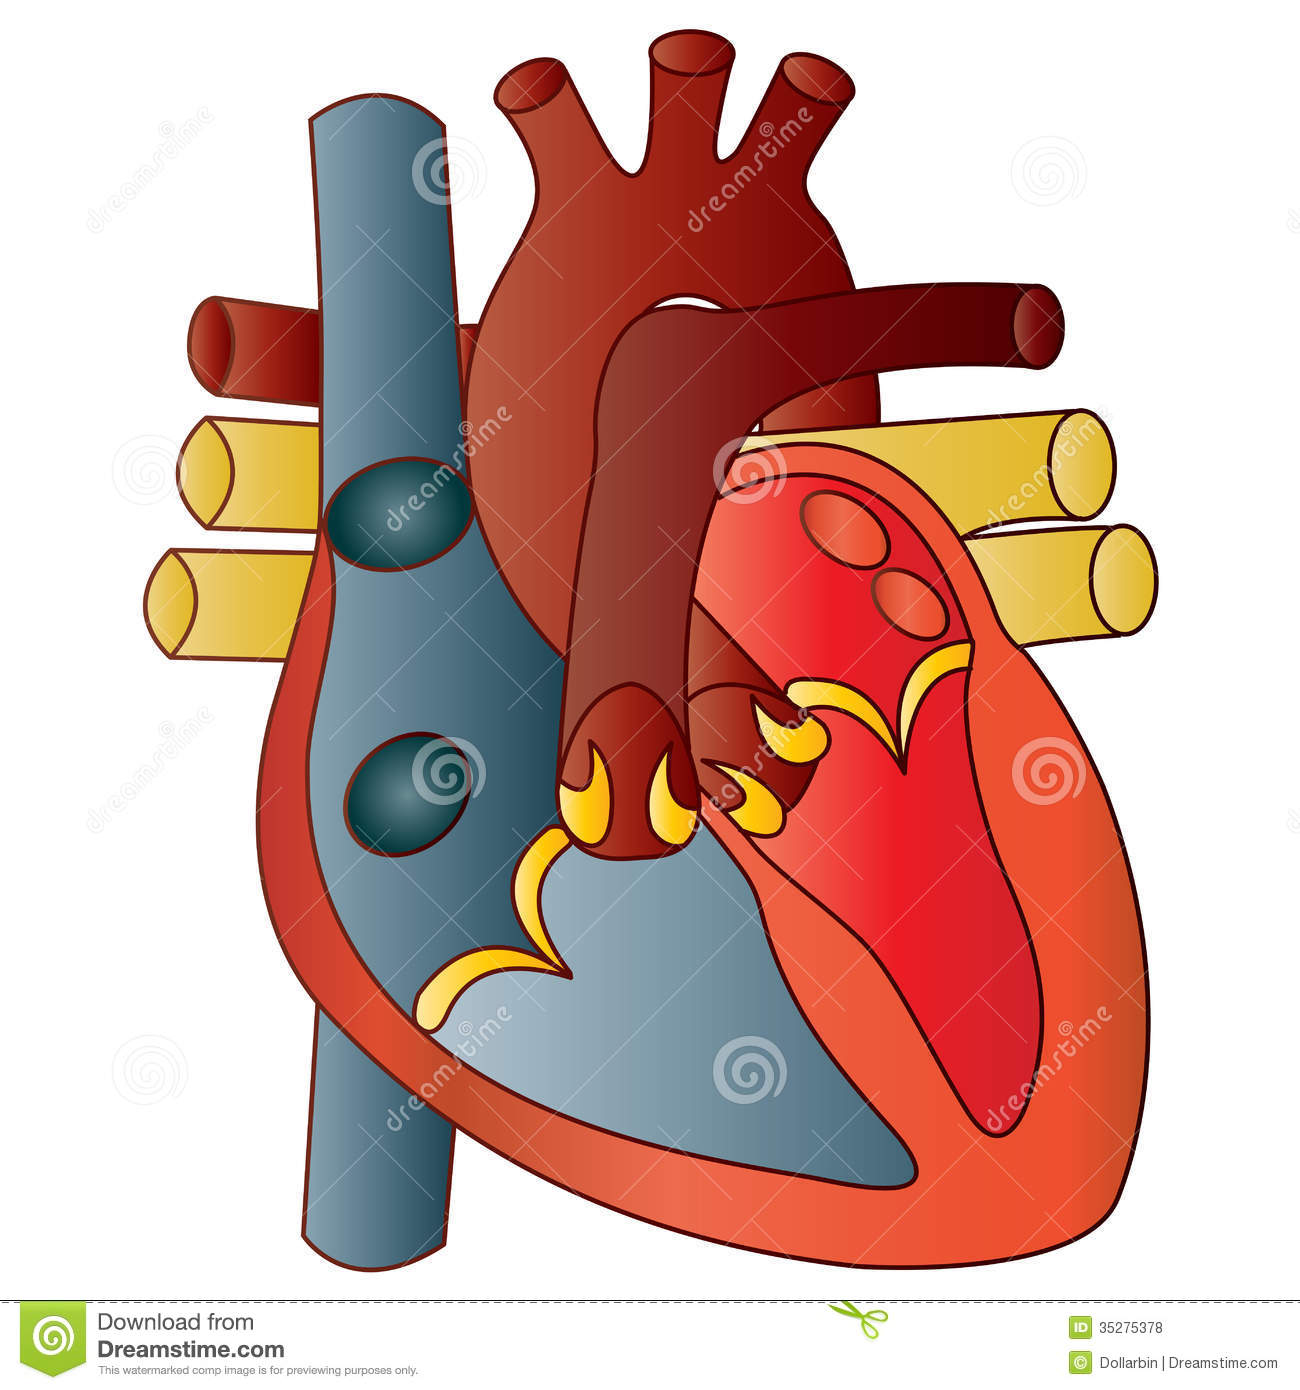 healthy heart diagram ford 8n 12 volt conversion wiring human stock vector. image of atrium, heart, - 35275378